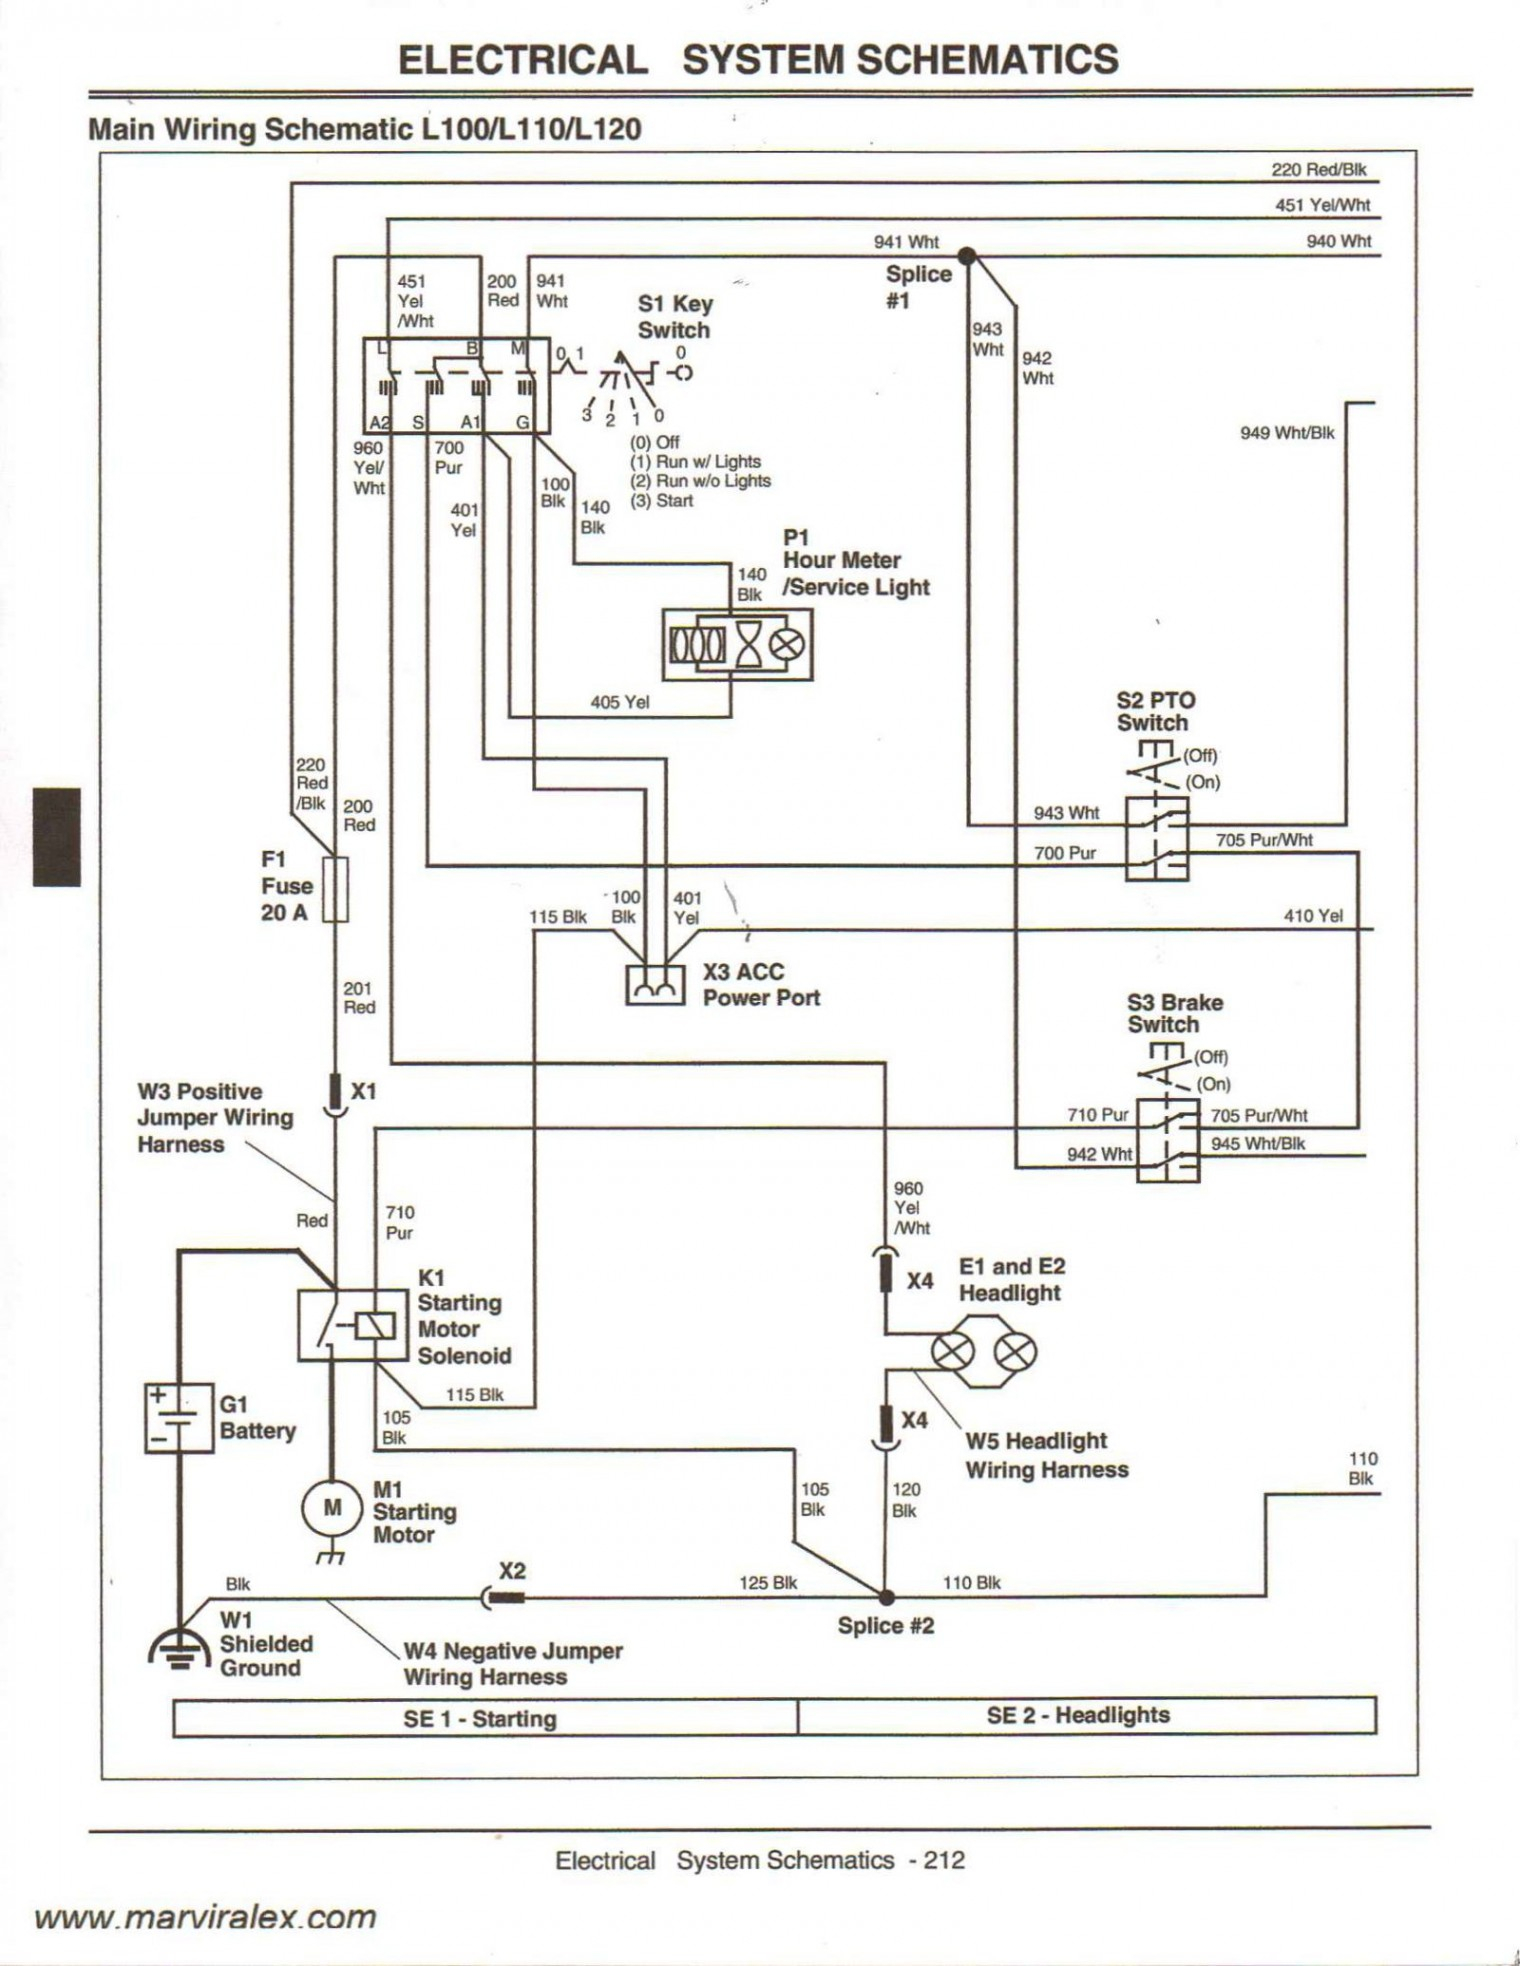 john deere l130 wiring diagram Collection-John Deere L130 Belt Diagram – John Deere L120 Clutch Wiring Diagram 318 John Deere Wiring 4-q